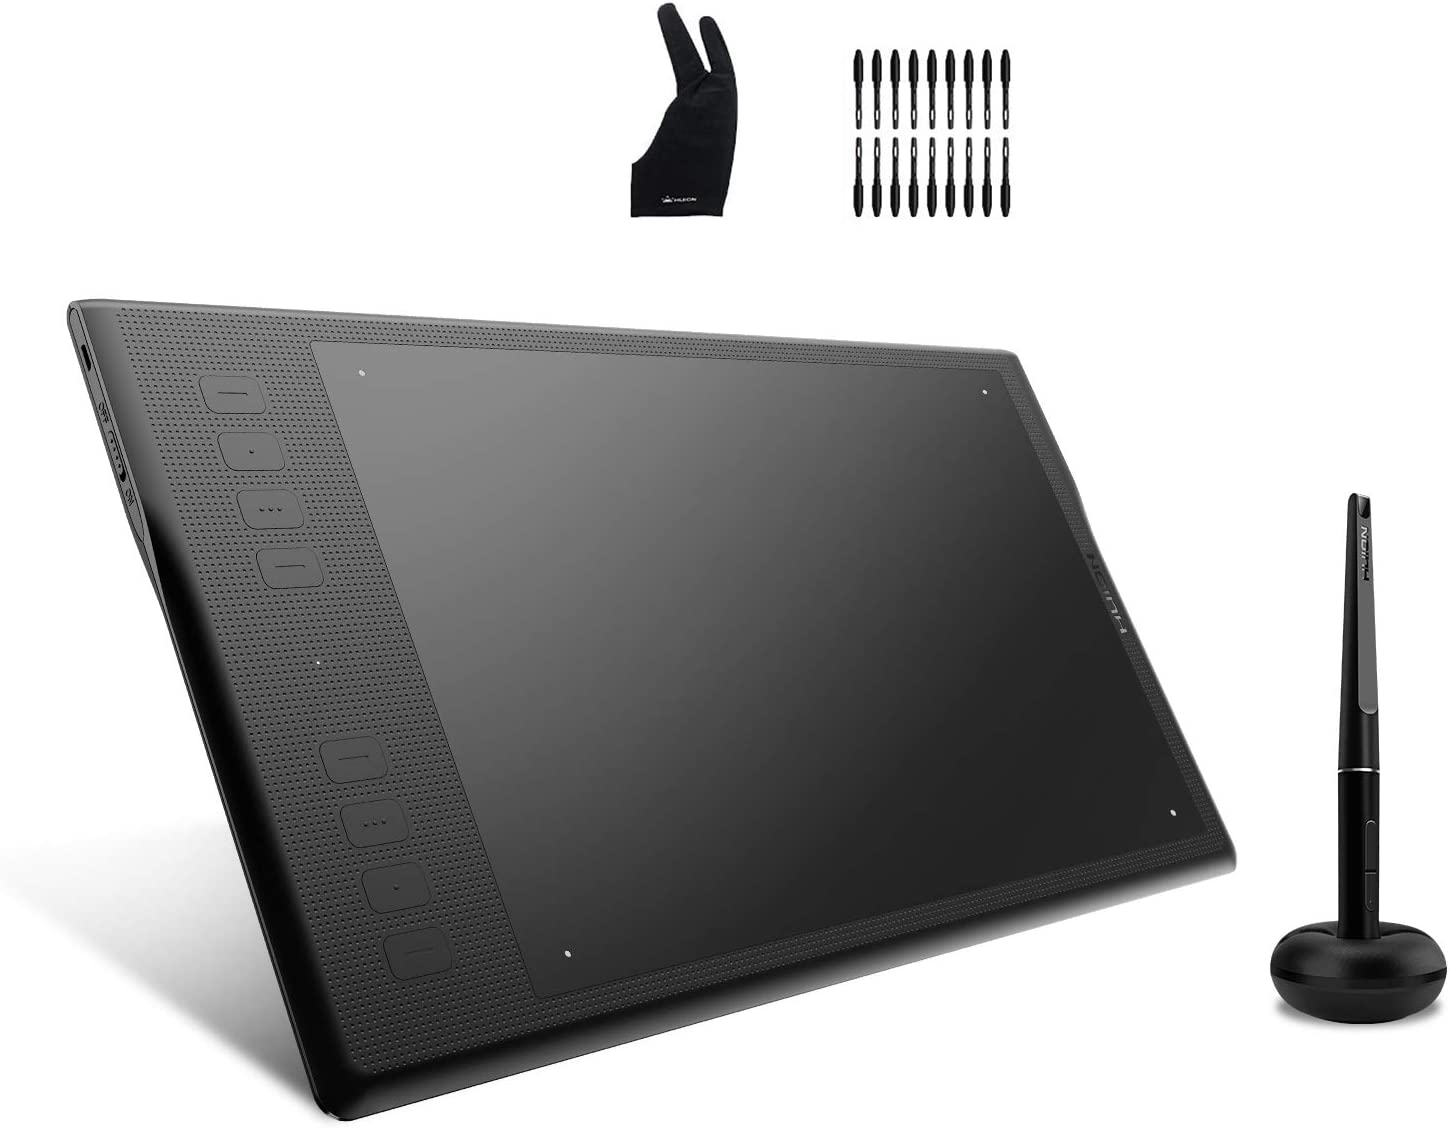 Huion Inspiroy Q11K V2 Graphic Drawing Tablet Tilt Function Battery-Free Stylus 8192 Pen Pressure with Artist Glove and 18 Pen Nibs